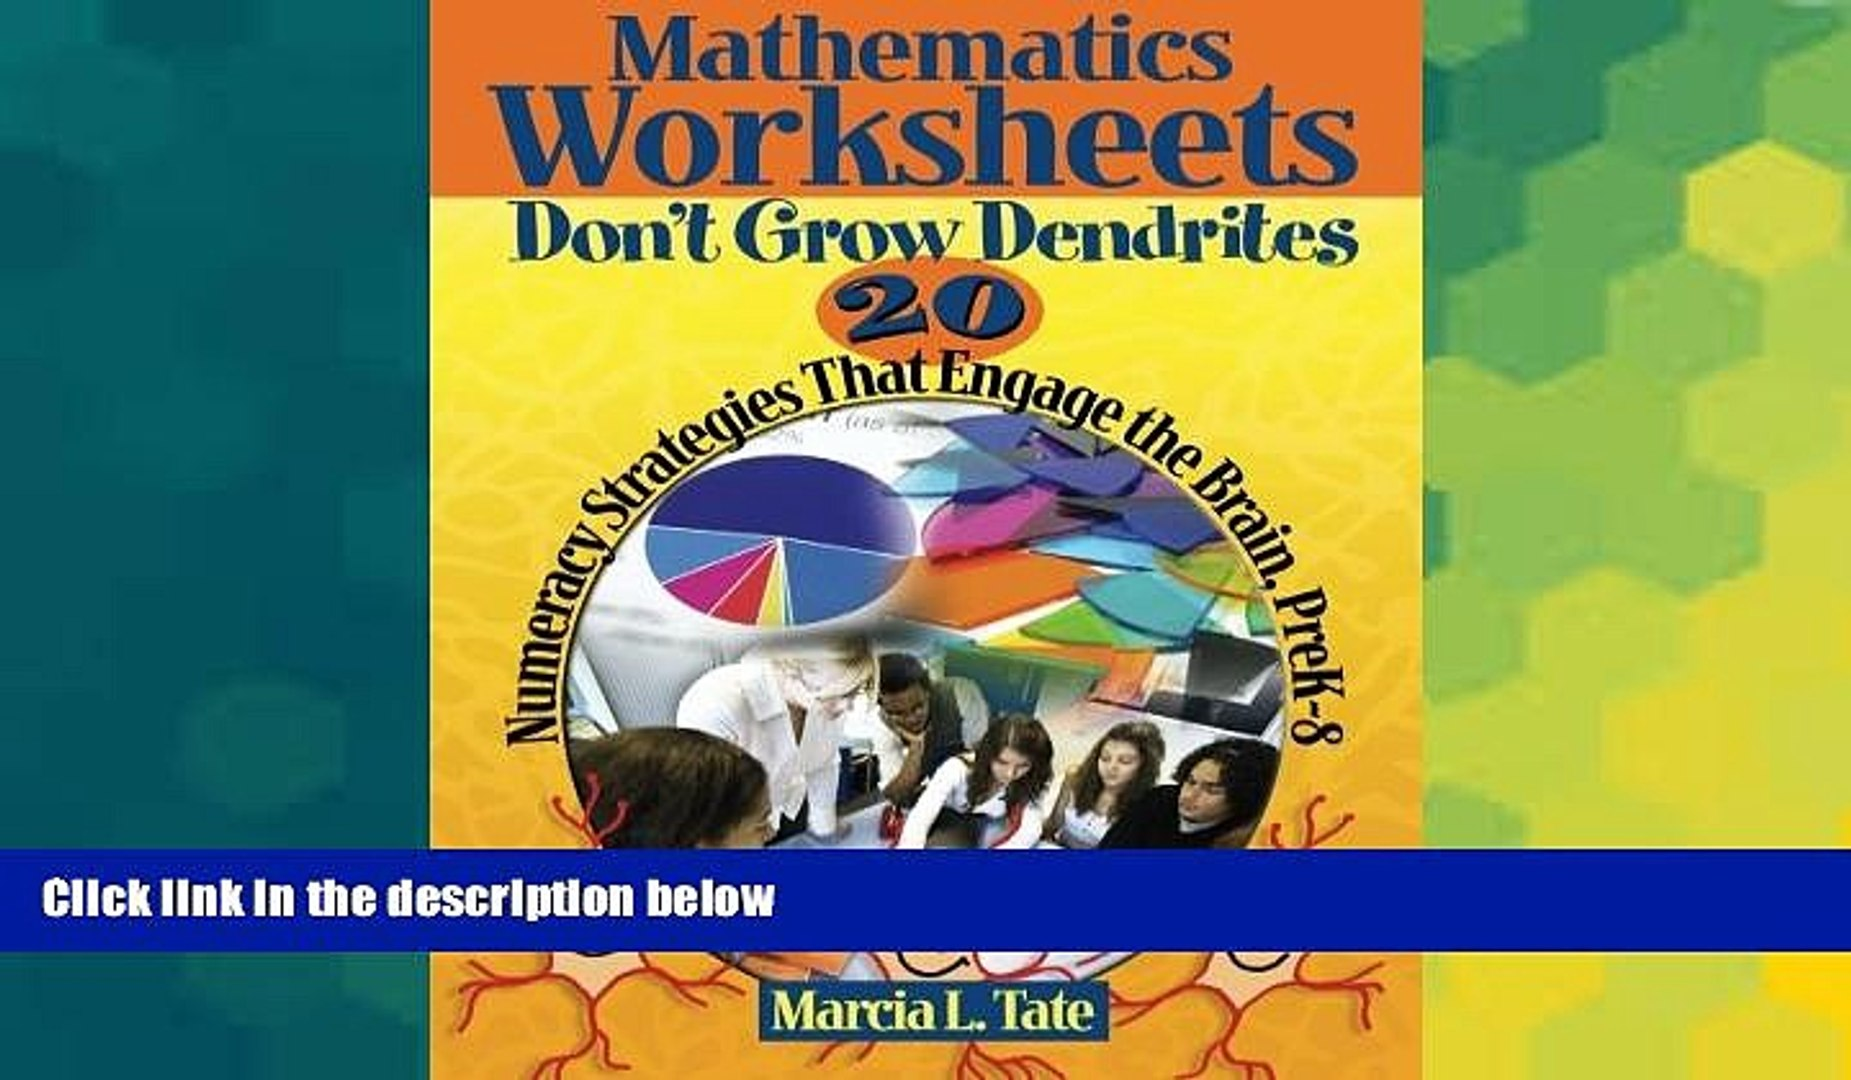 Big Deals Mathematics Worksheets Don t Grow Dendrites: 20 Numeracy  Strategies That Engage the